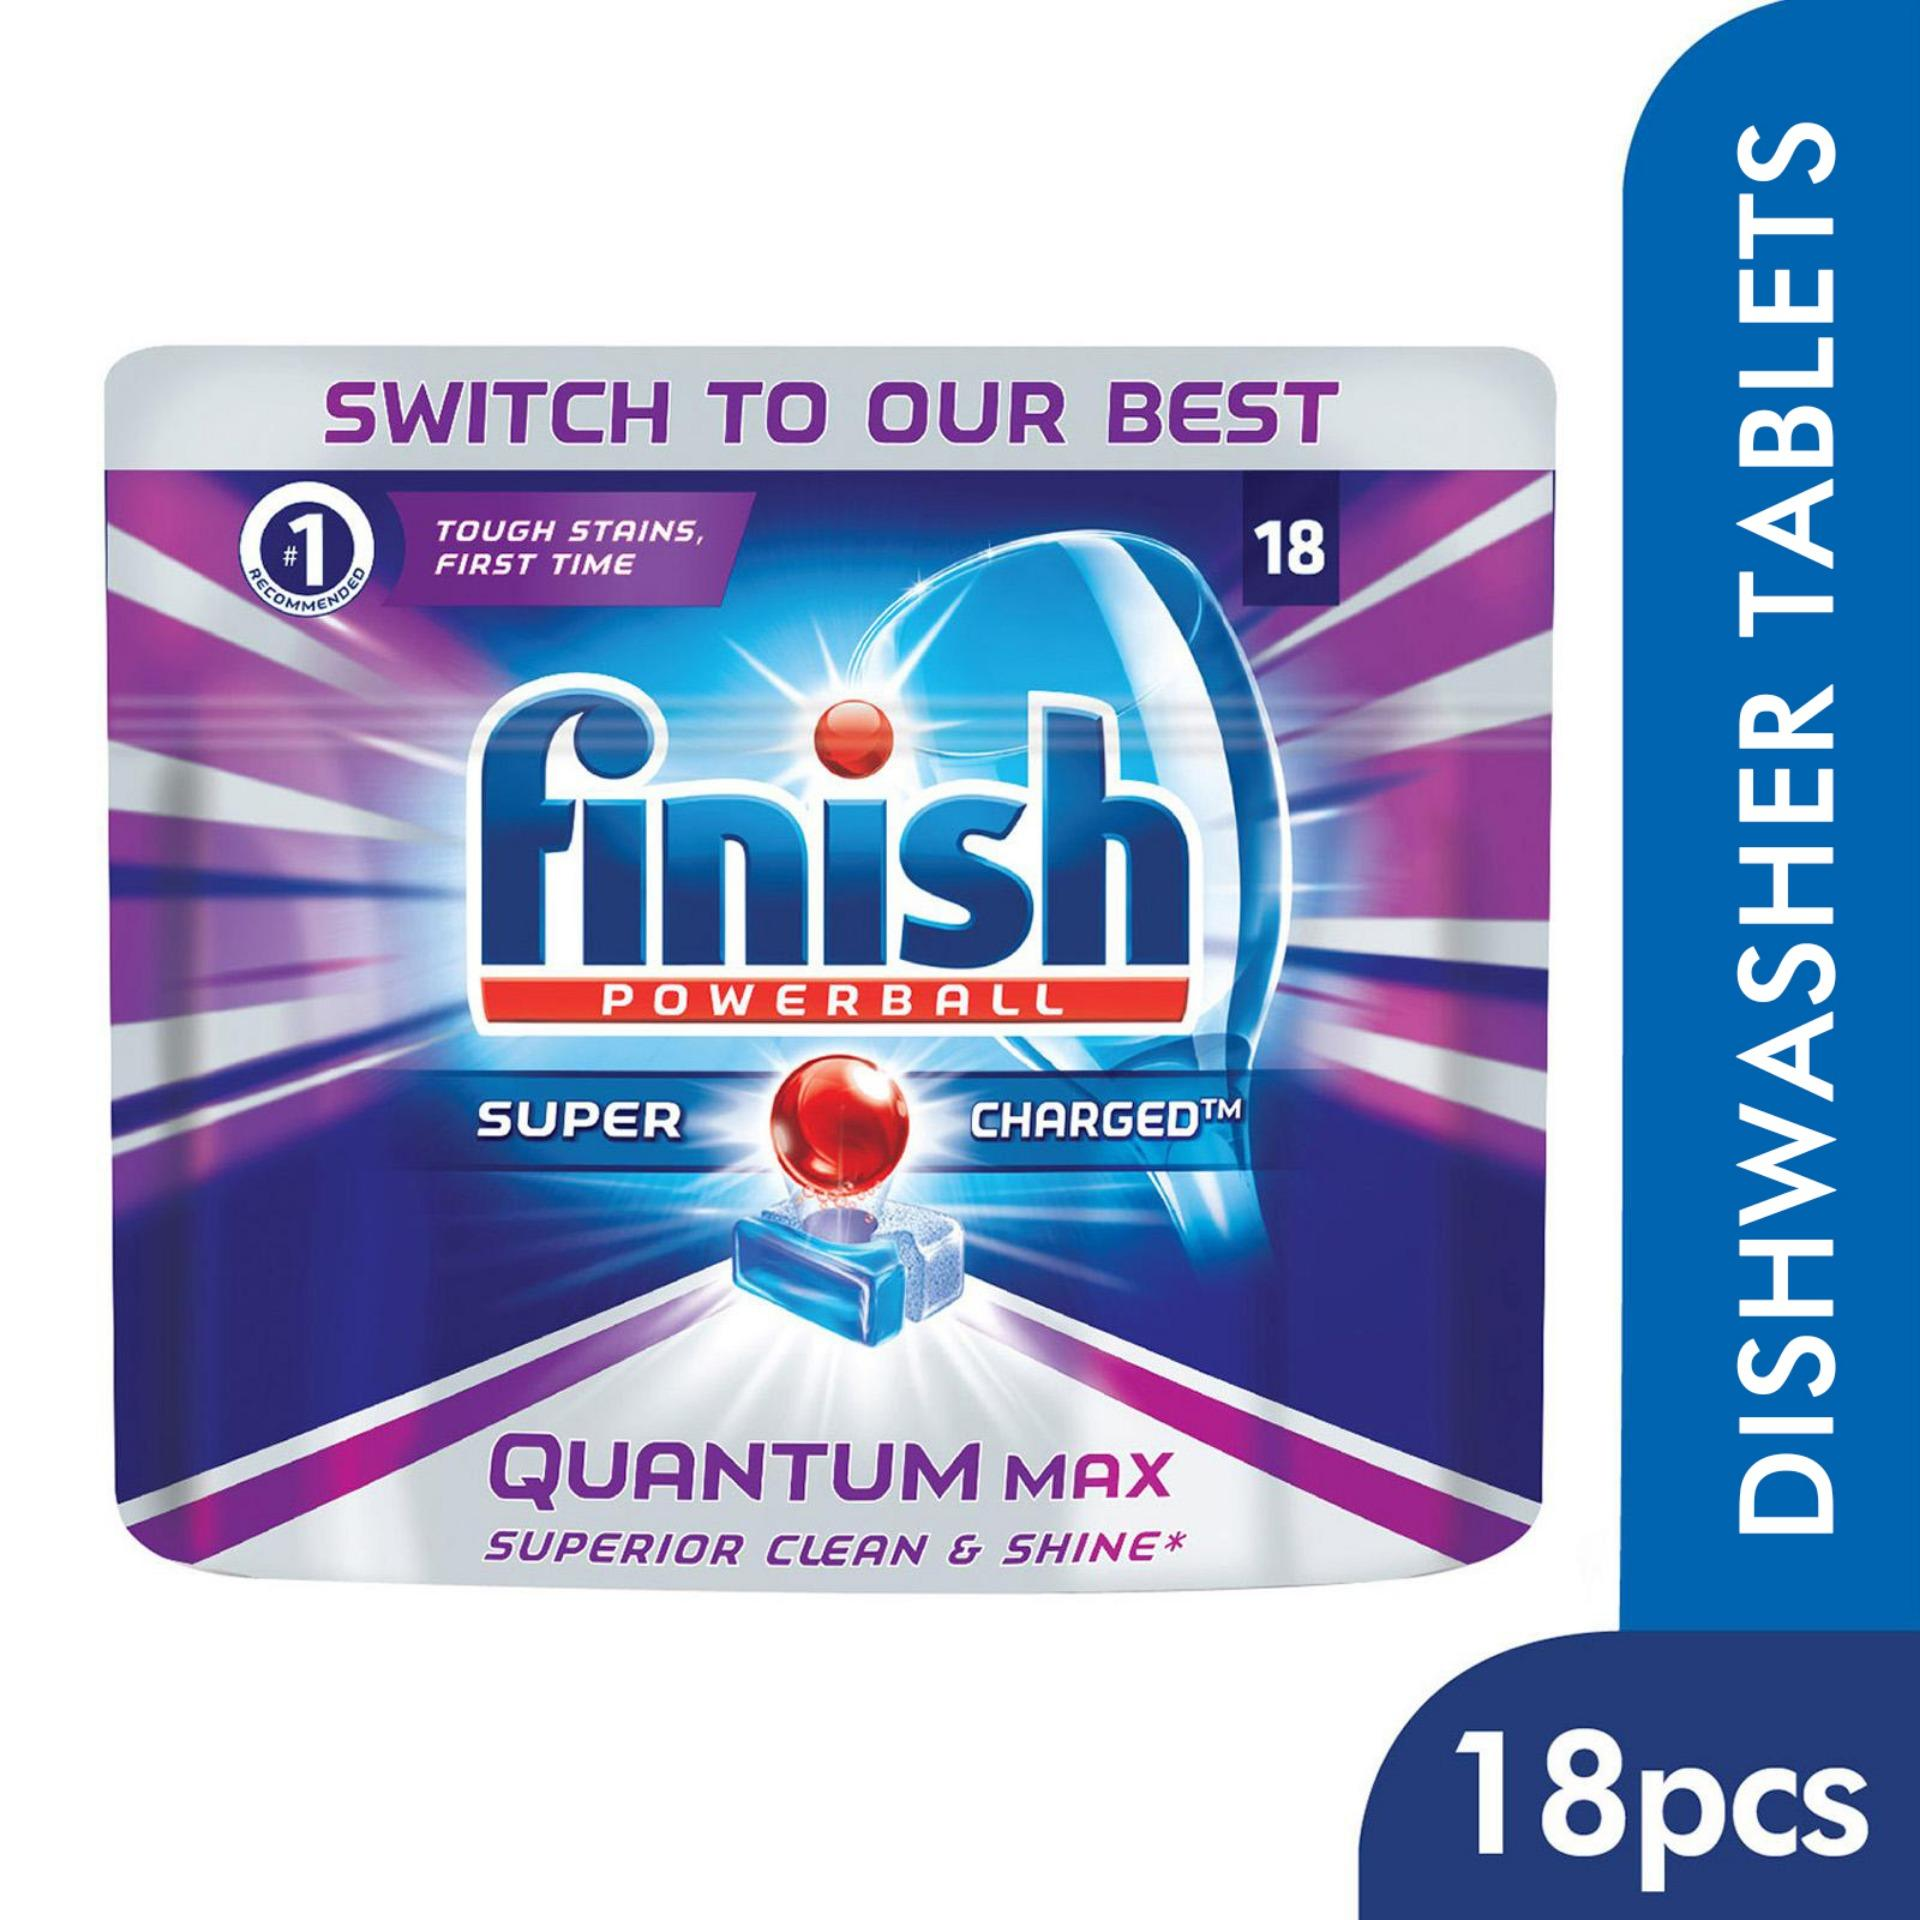 Finish Quantum Max Super Charged Powerball Dishwasher Tablets Dishwashing Cleaner Review